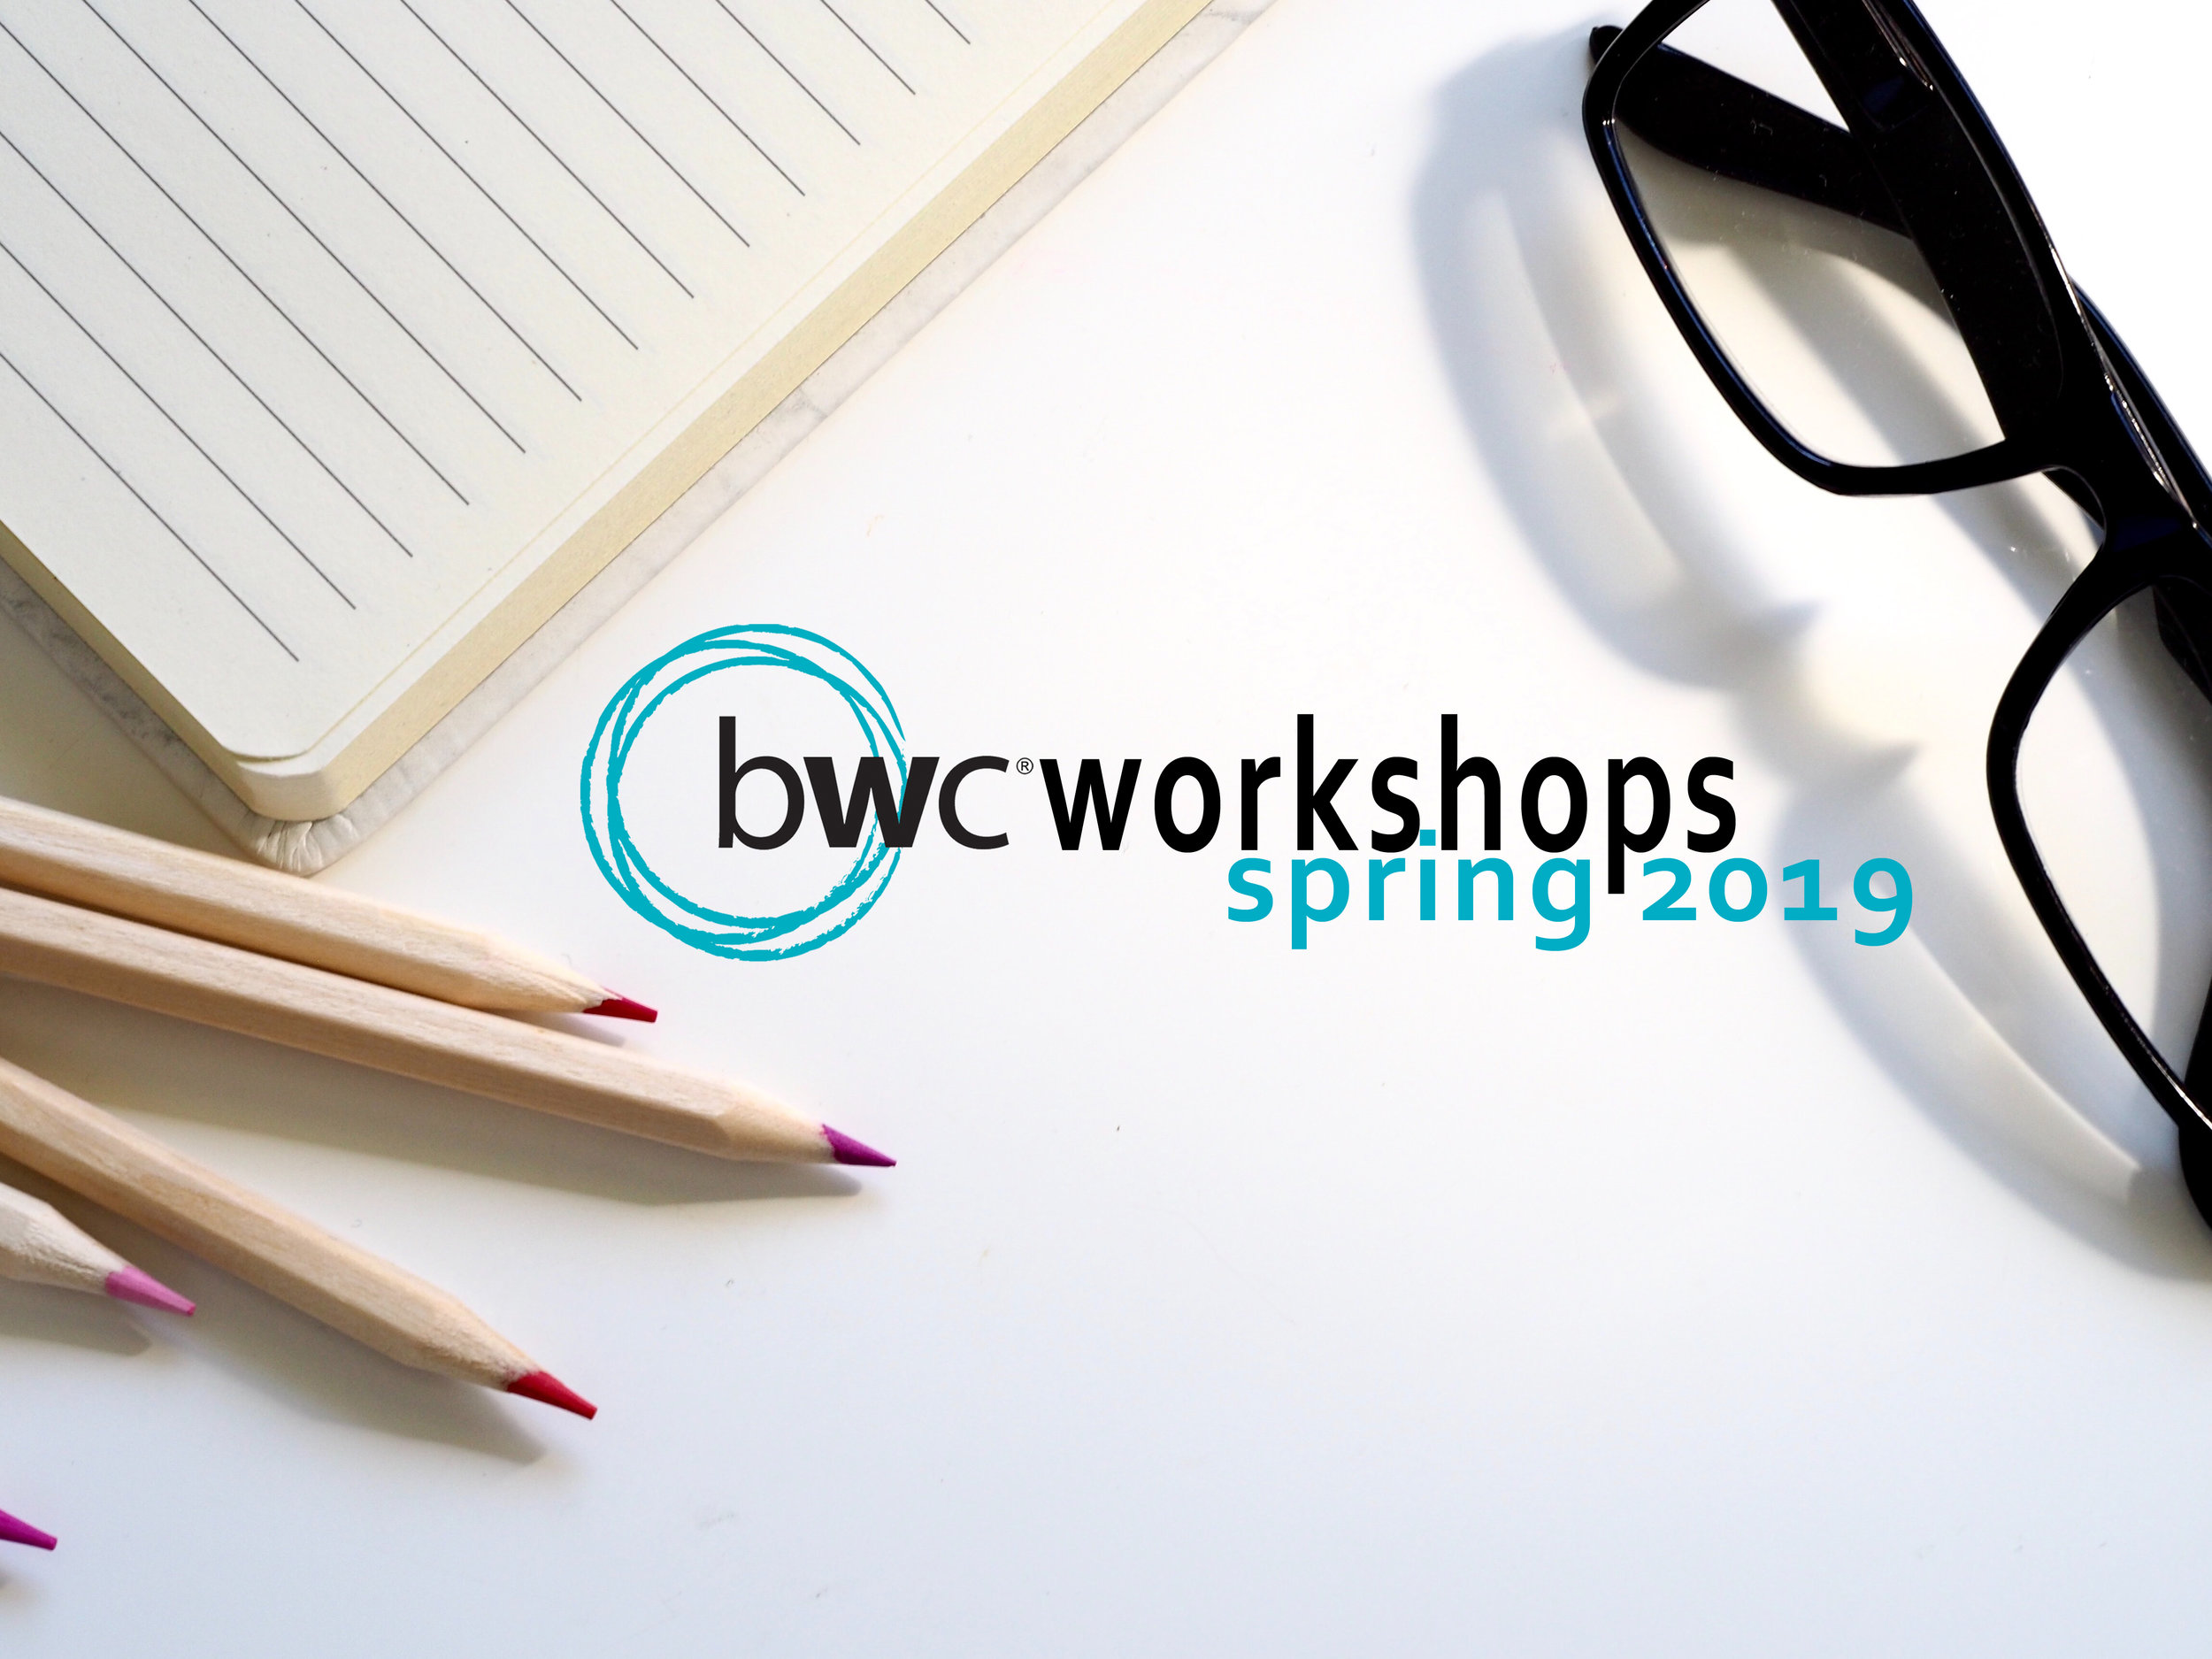 BWC workshop image.jpg